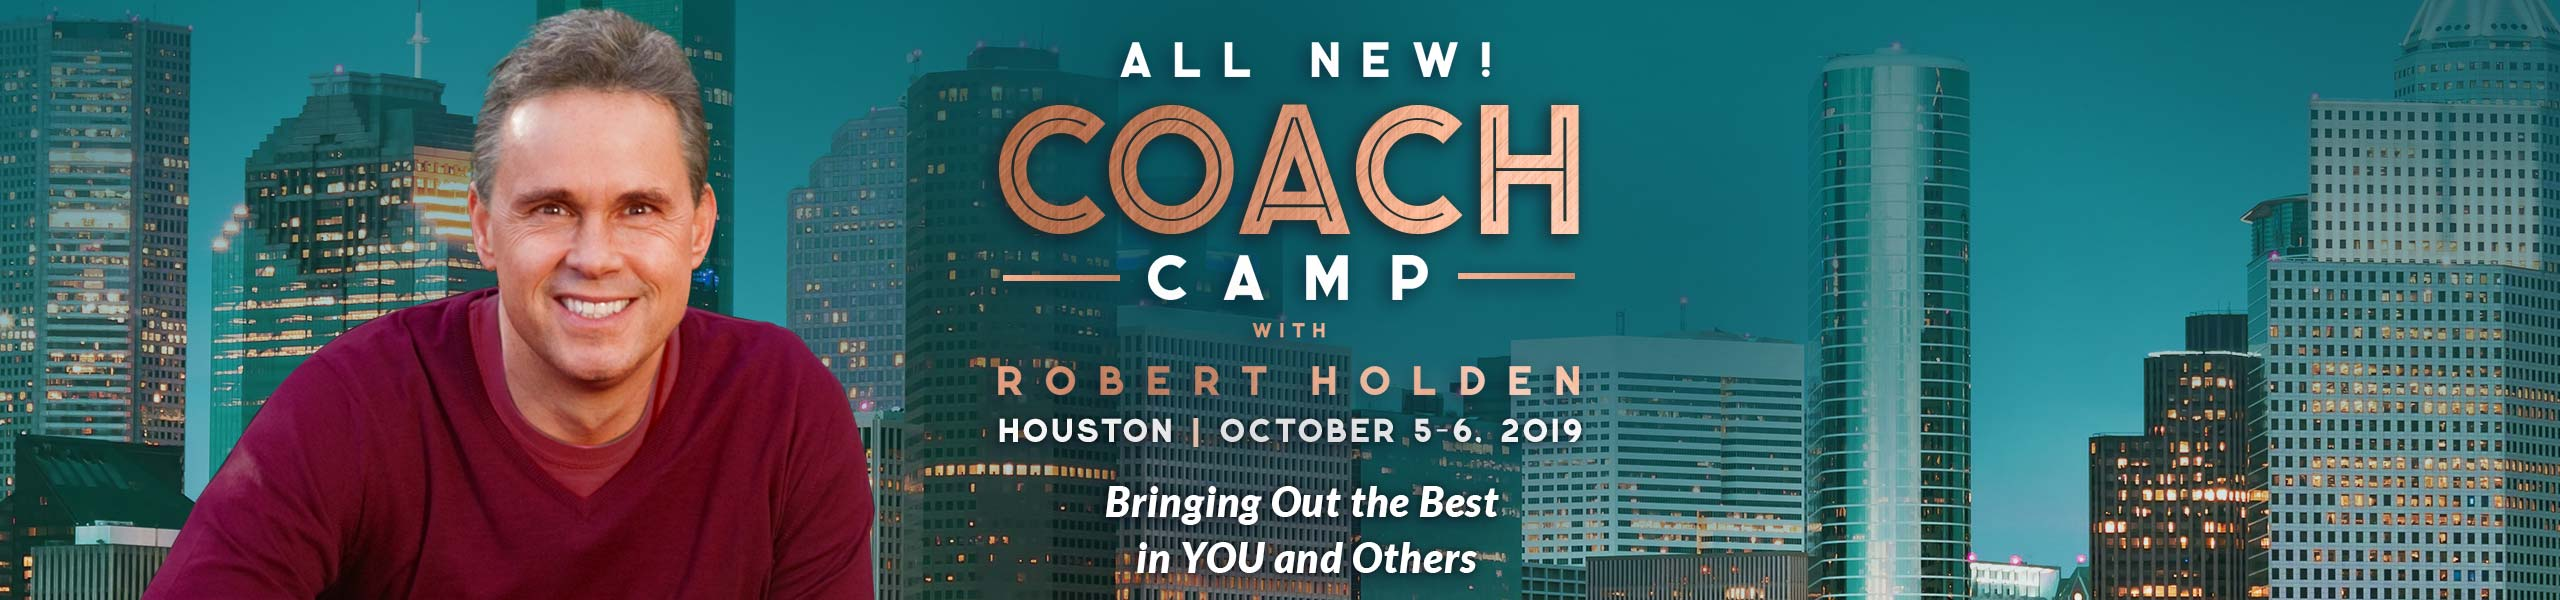 Coach Camp - Houston